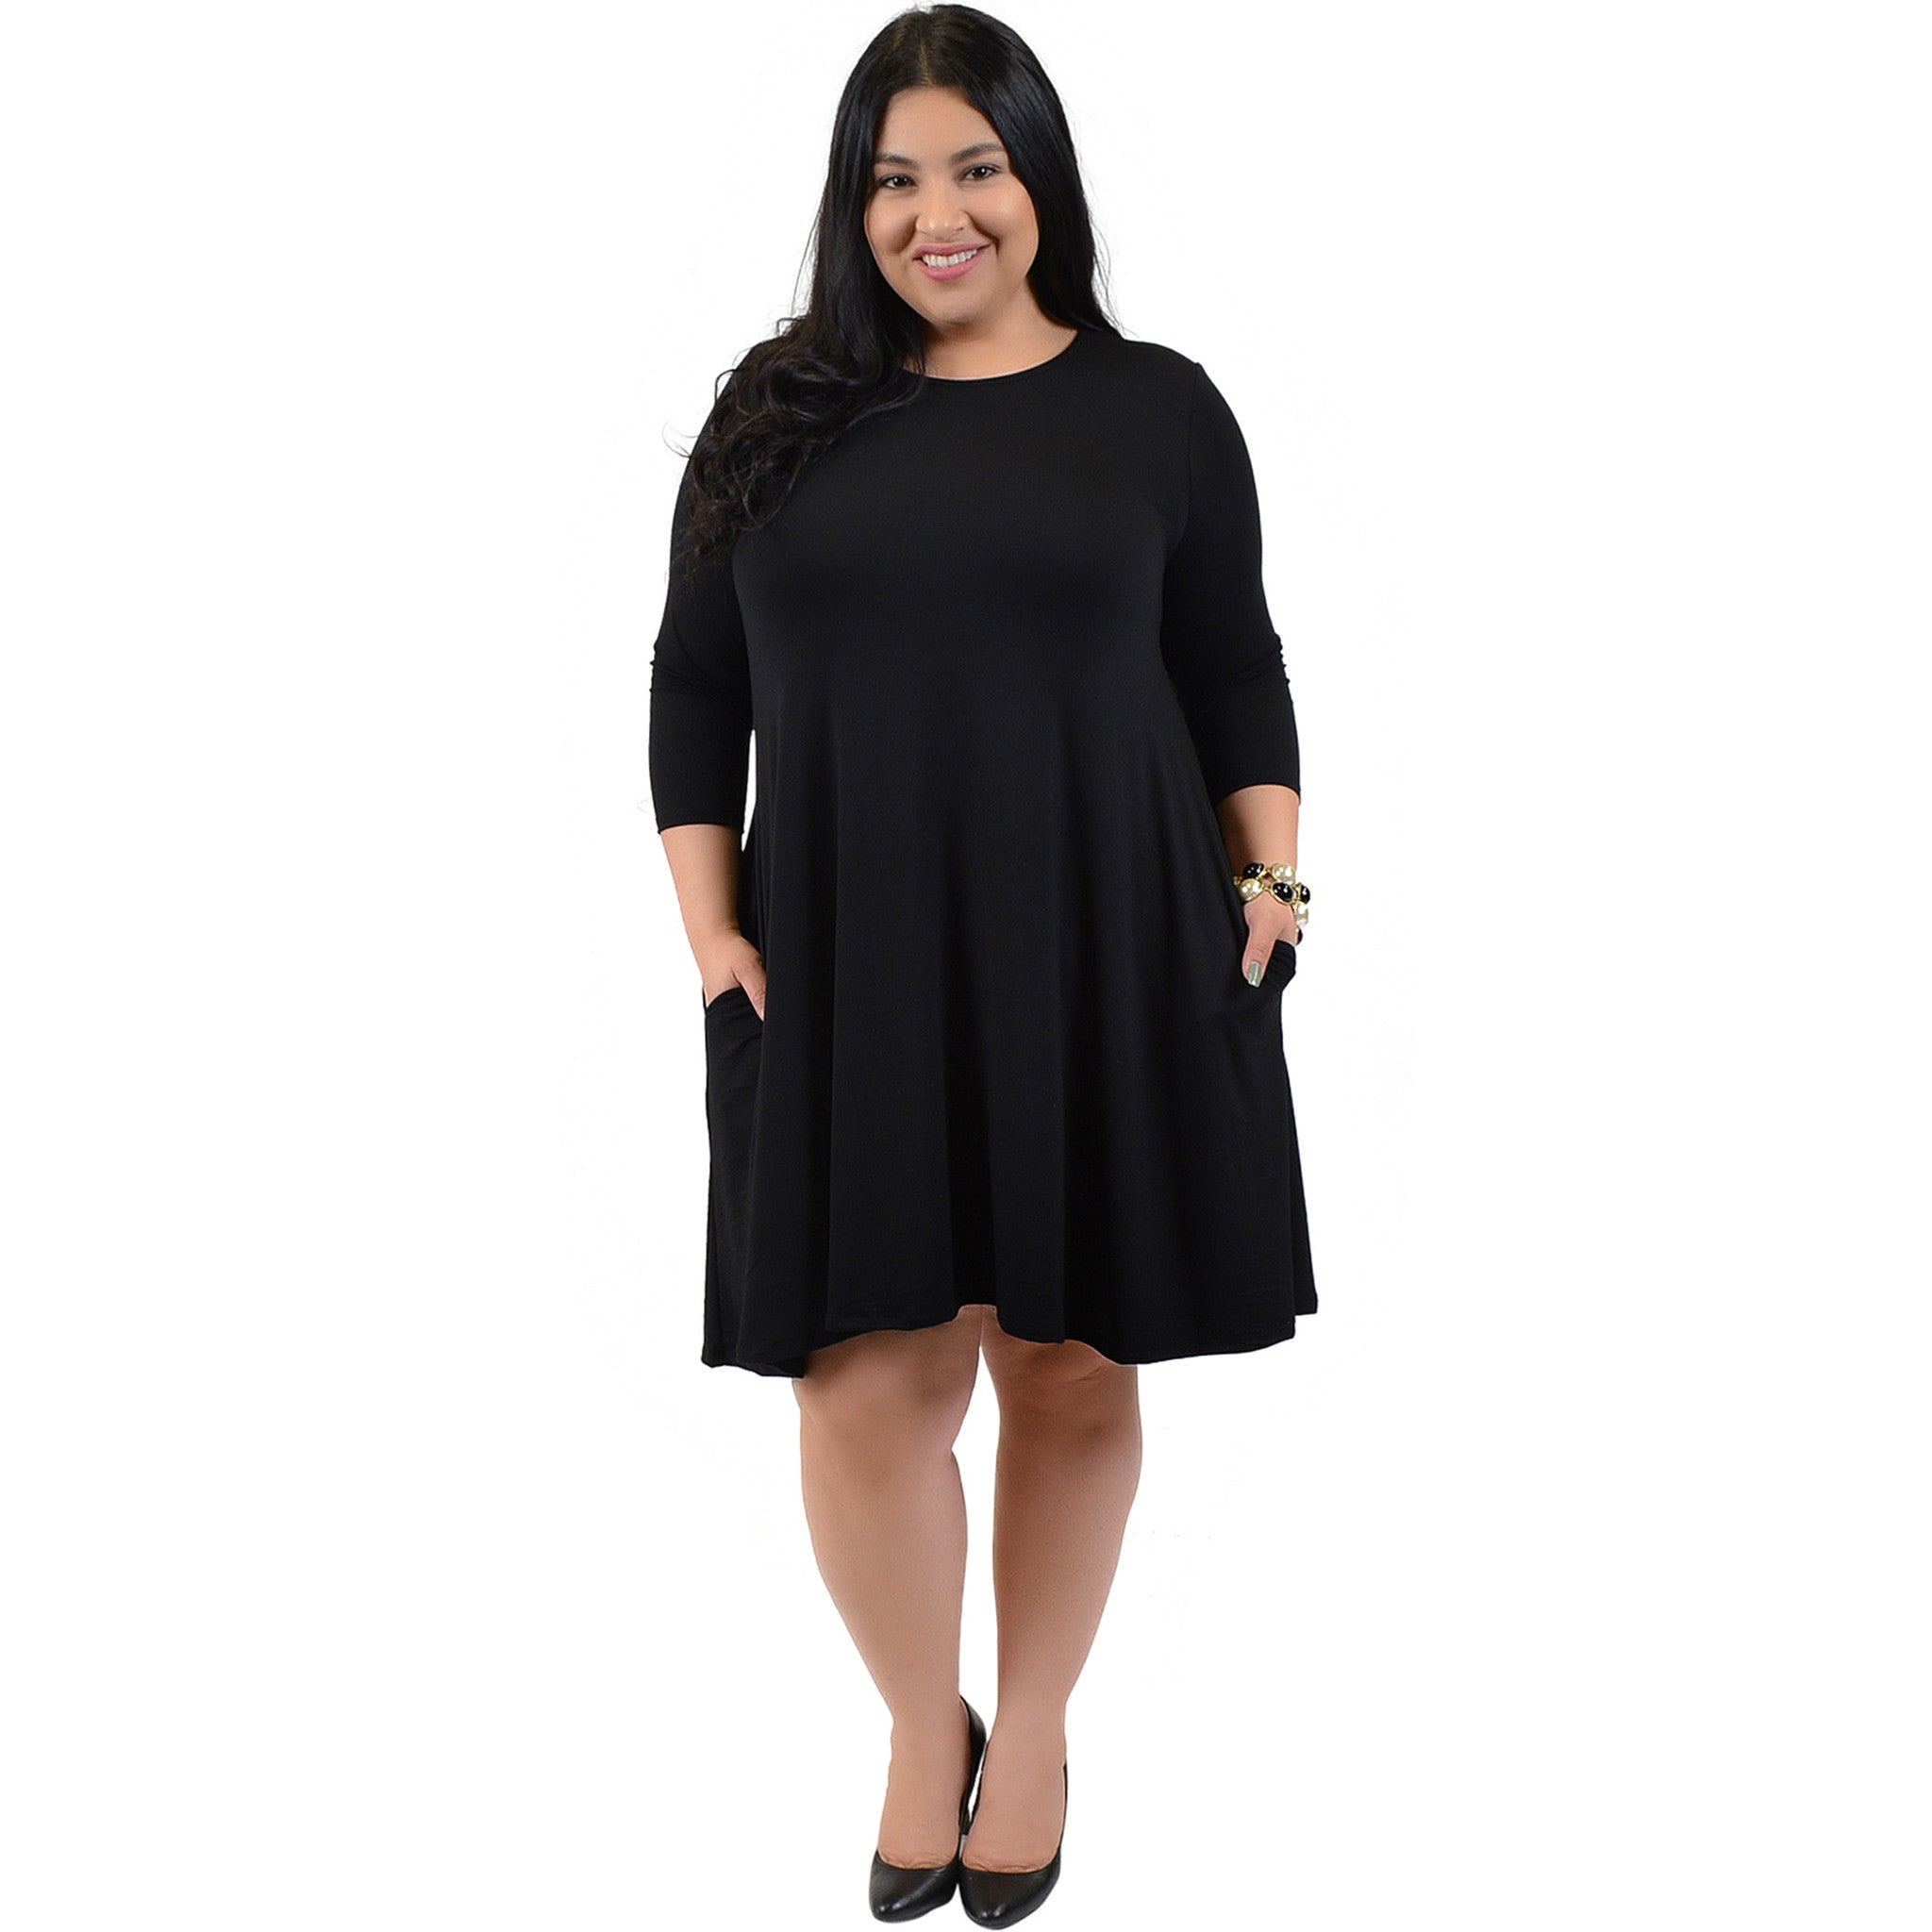 Plus Size Womens Tunic Tops For Leggings